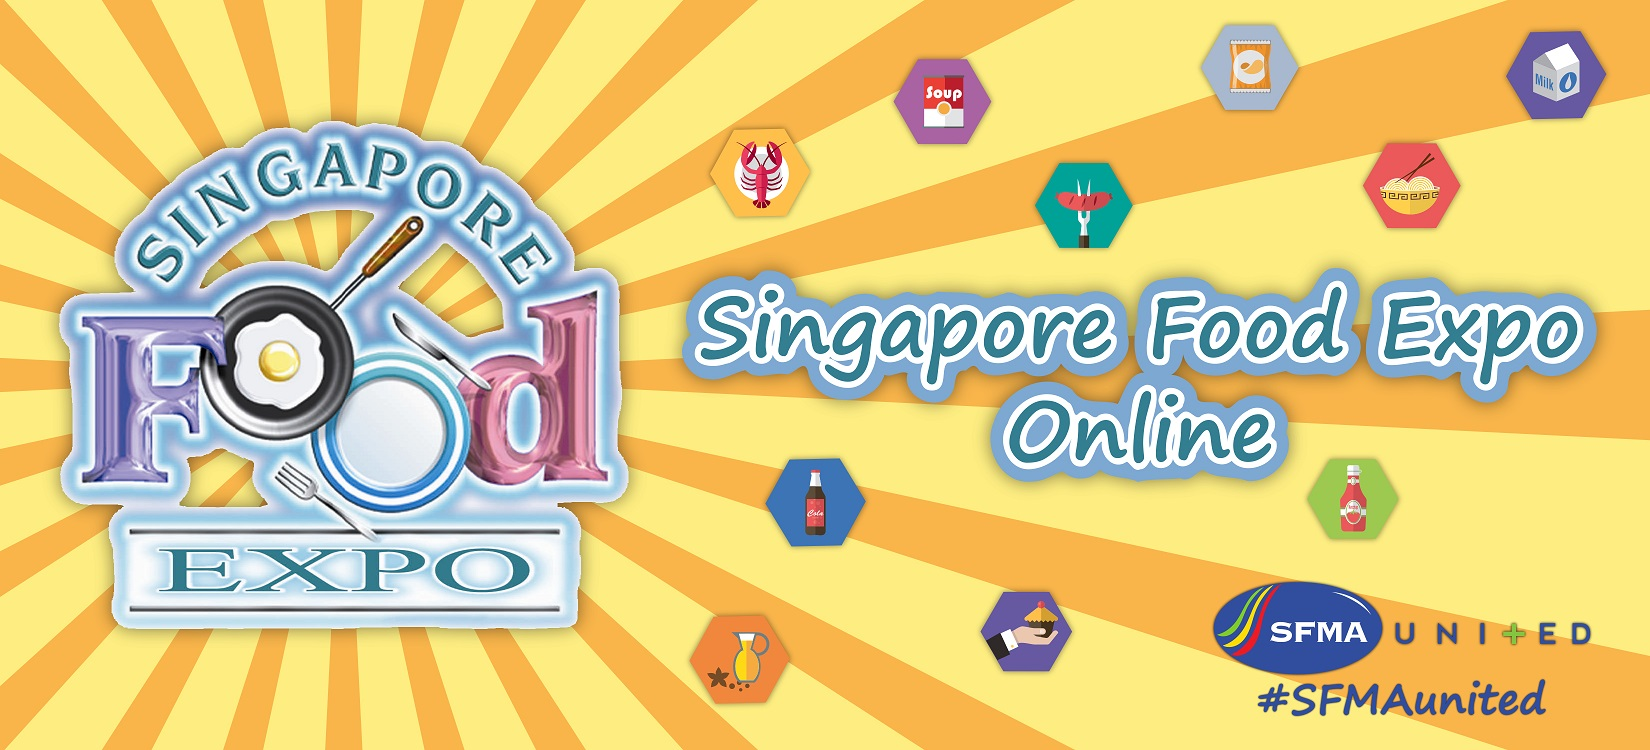 Singapore Food Expo Online